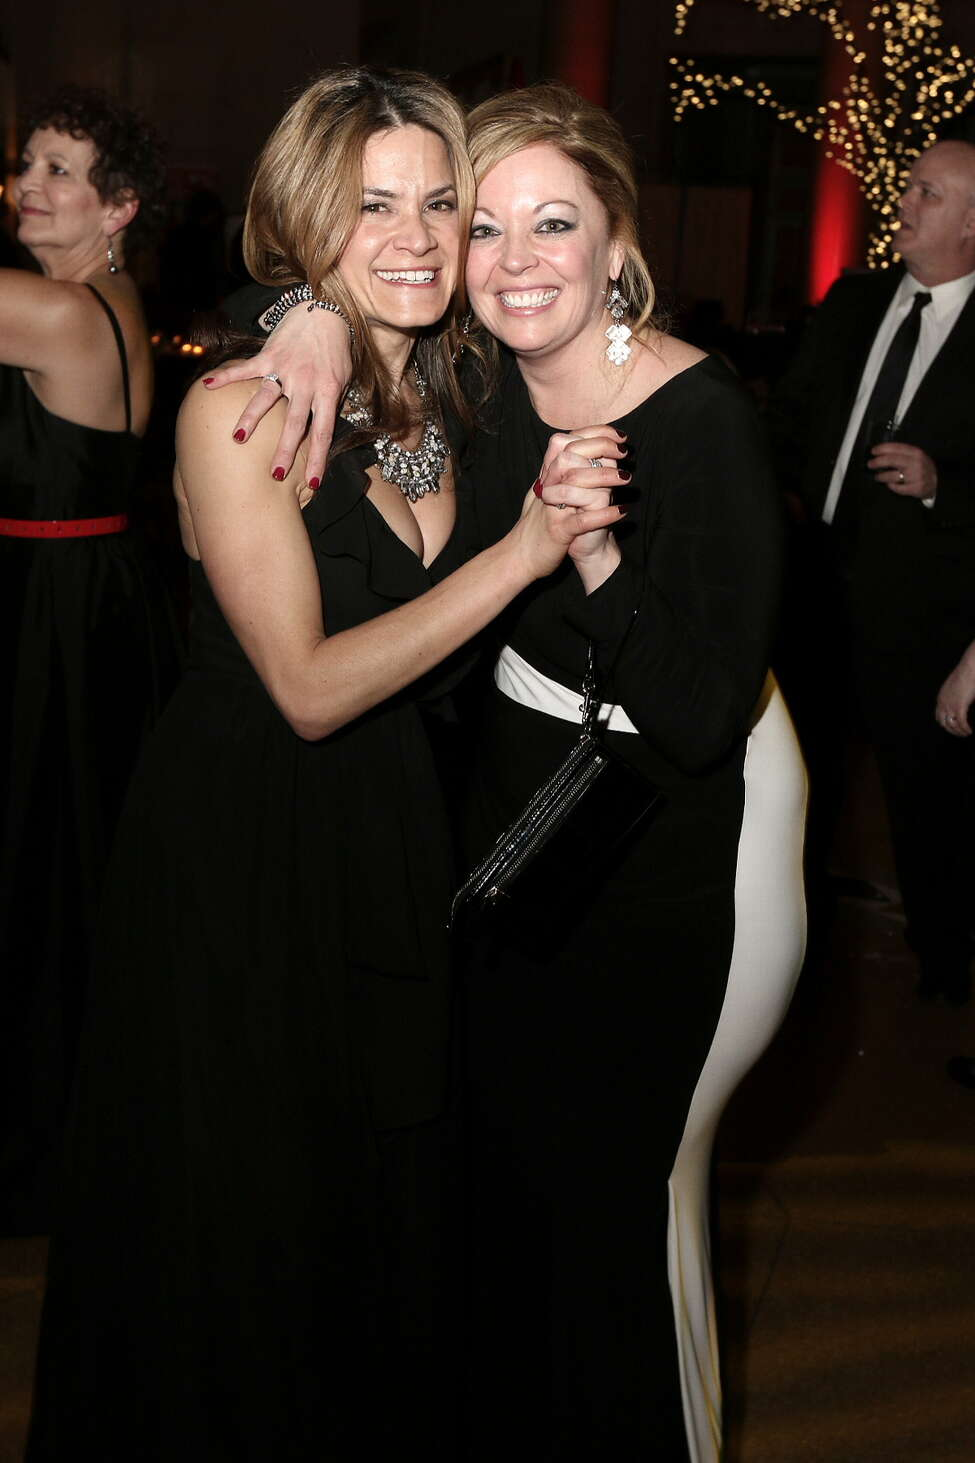 Were you Seen at the 32nd Annual Capital Region Heart Ball at the Hall of Springs in Saratoga Springs on Saturday, March 14, 2015? This year's event was themed 'Radio Days' and proceeds benefit the American Heart Association.